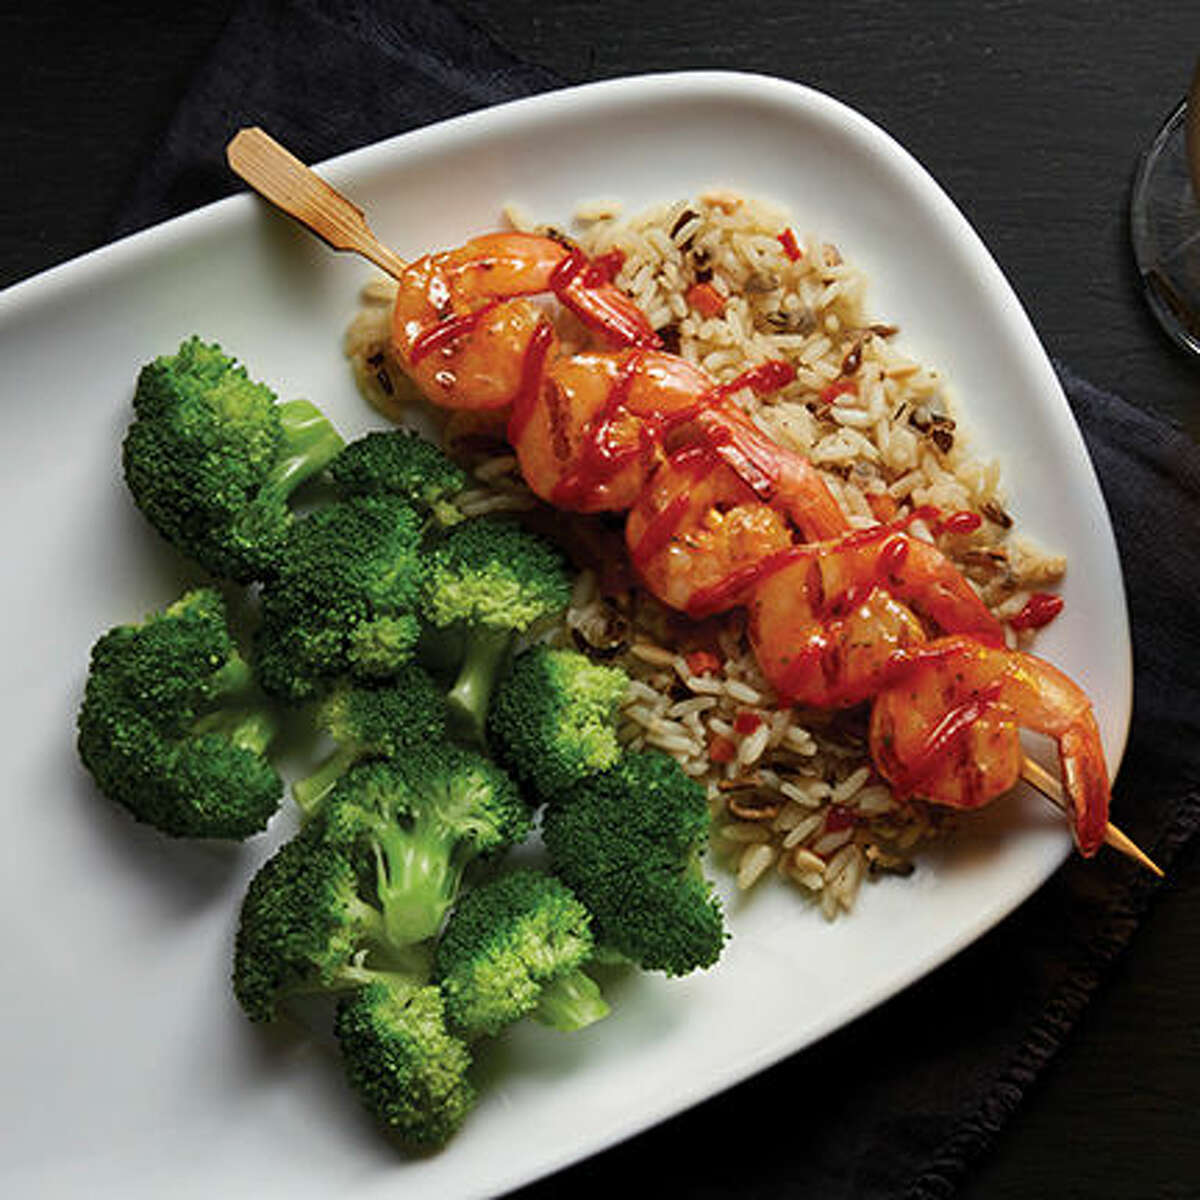 Prepare a Delicious Meal in Minutes